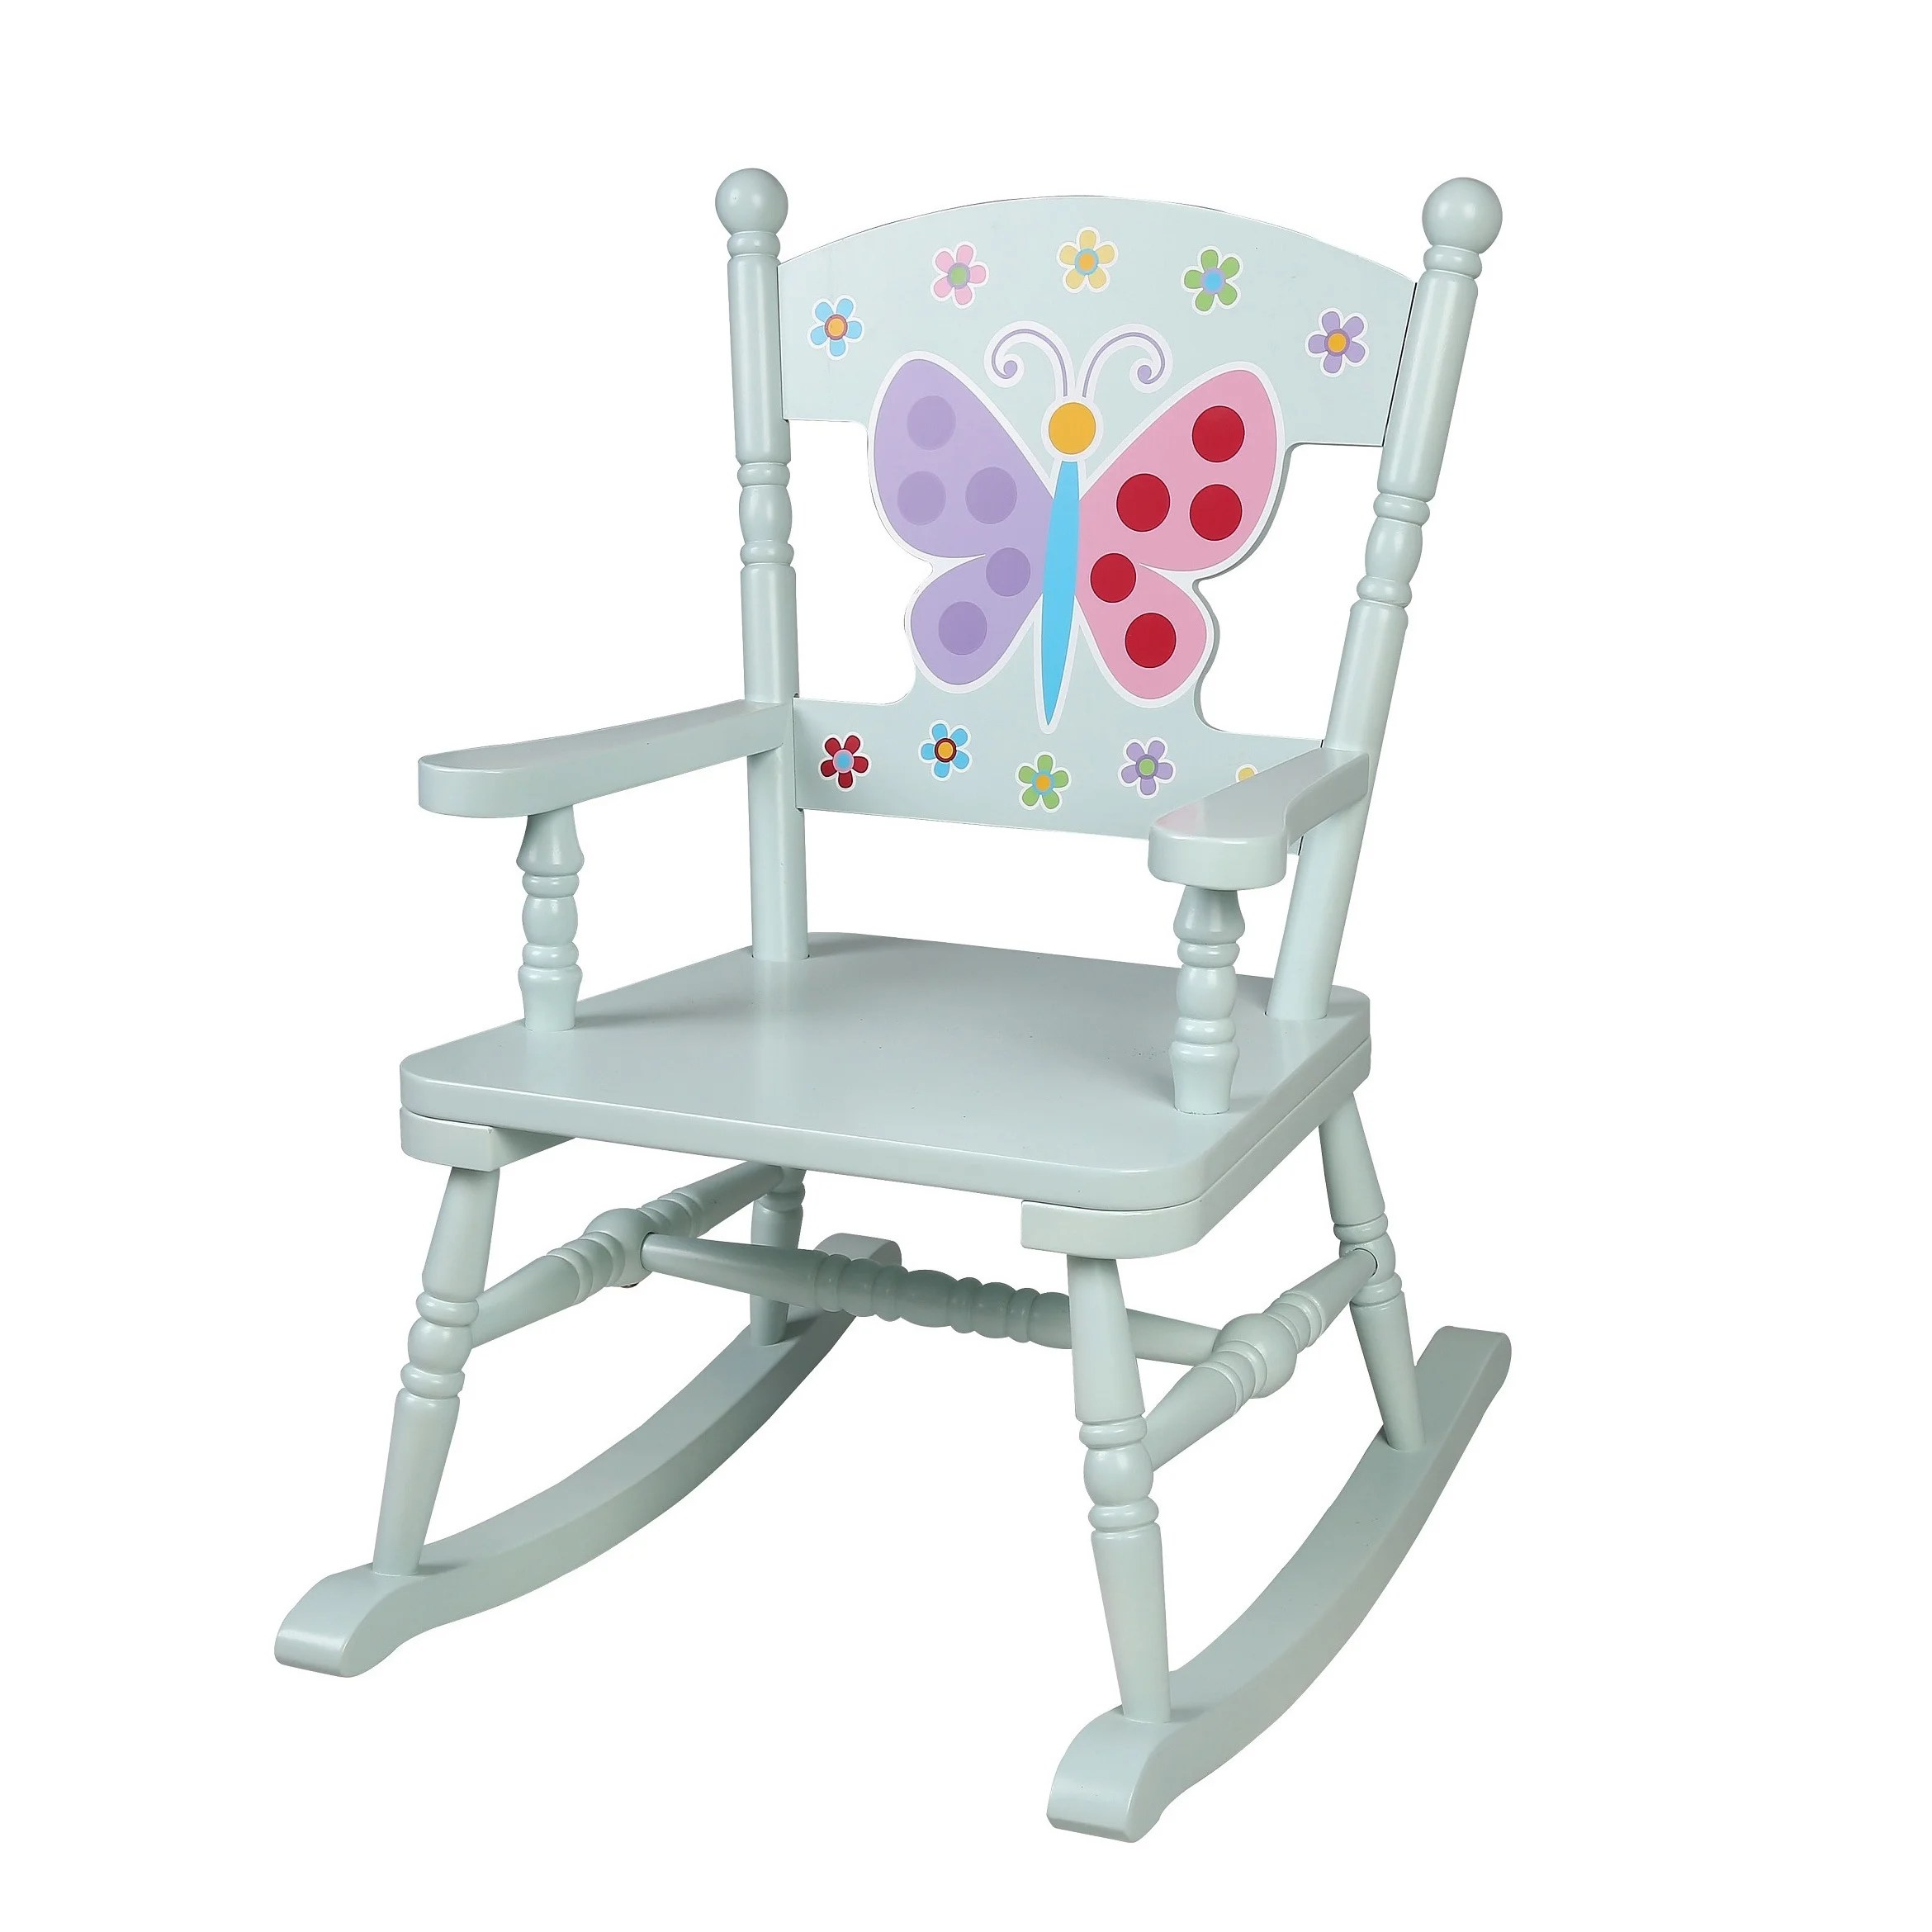 Kids Rocking Chairs Levels Of Discovery Olive Kids Blue Wood Butterfly Garden Rocking Chair